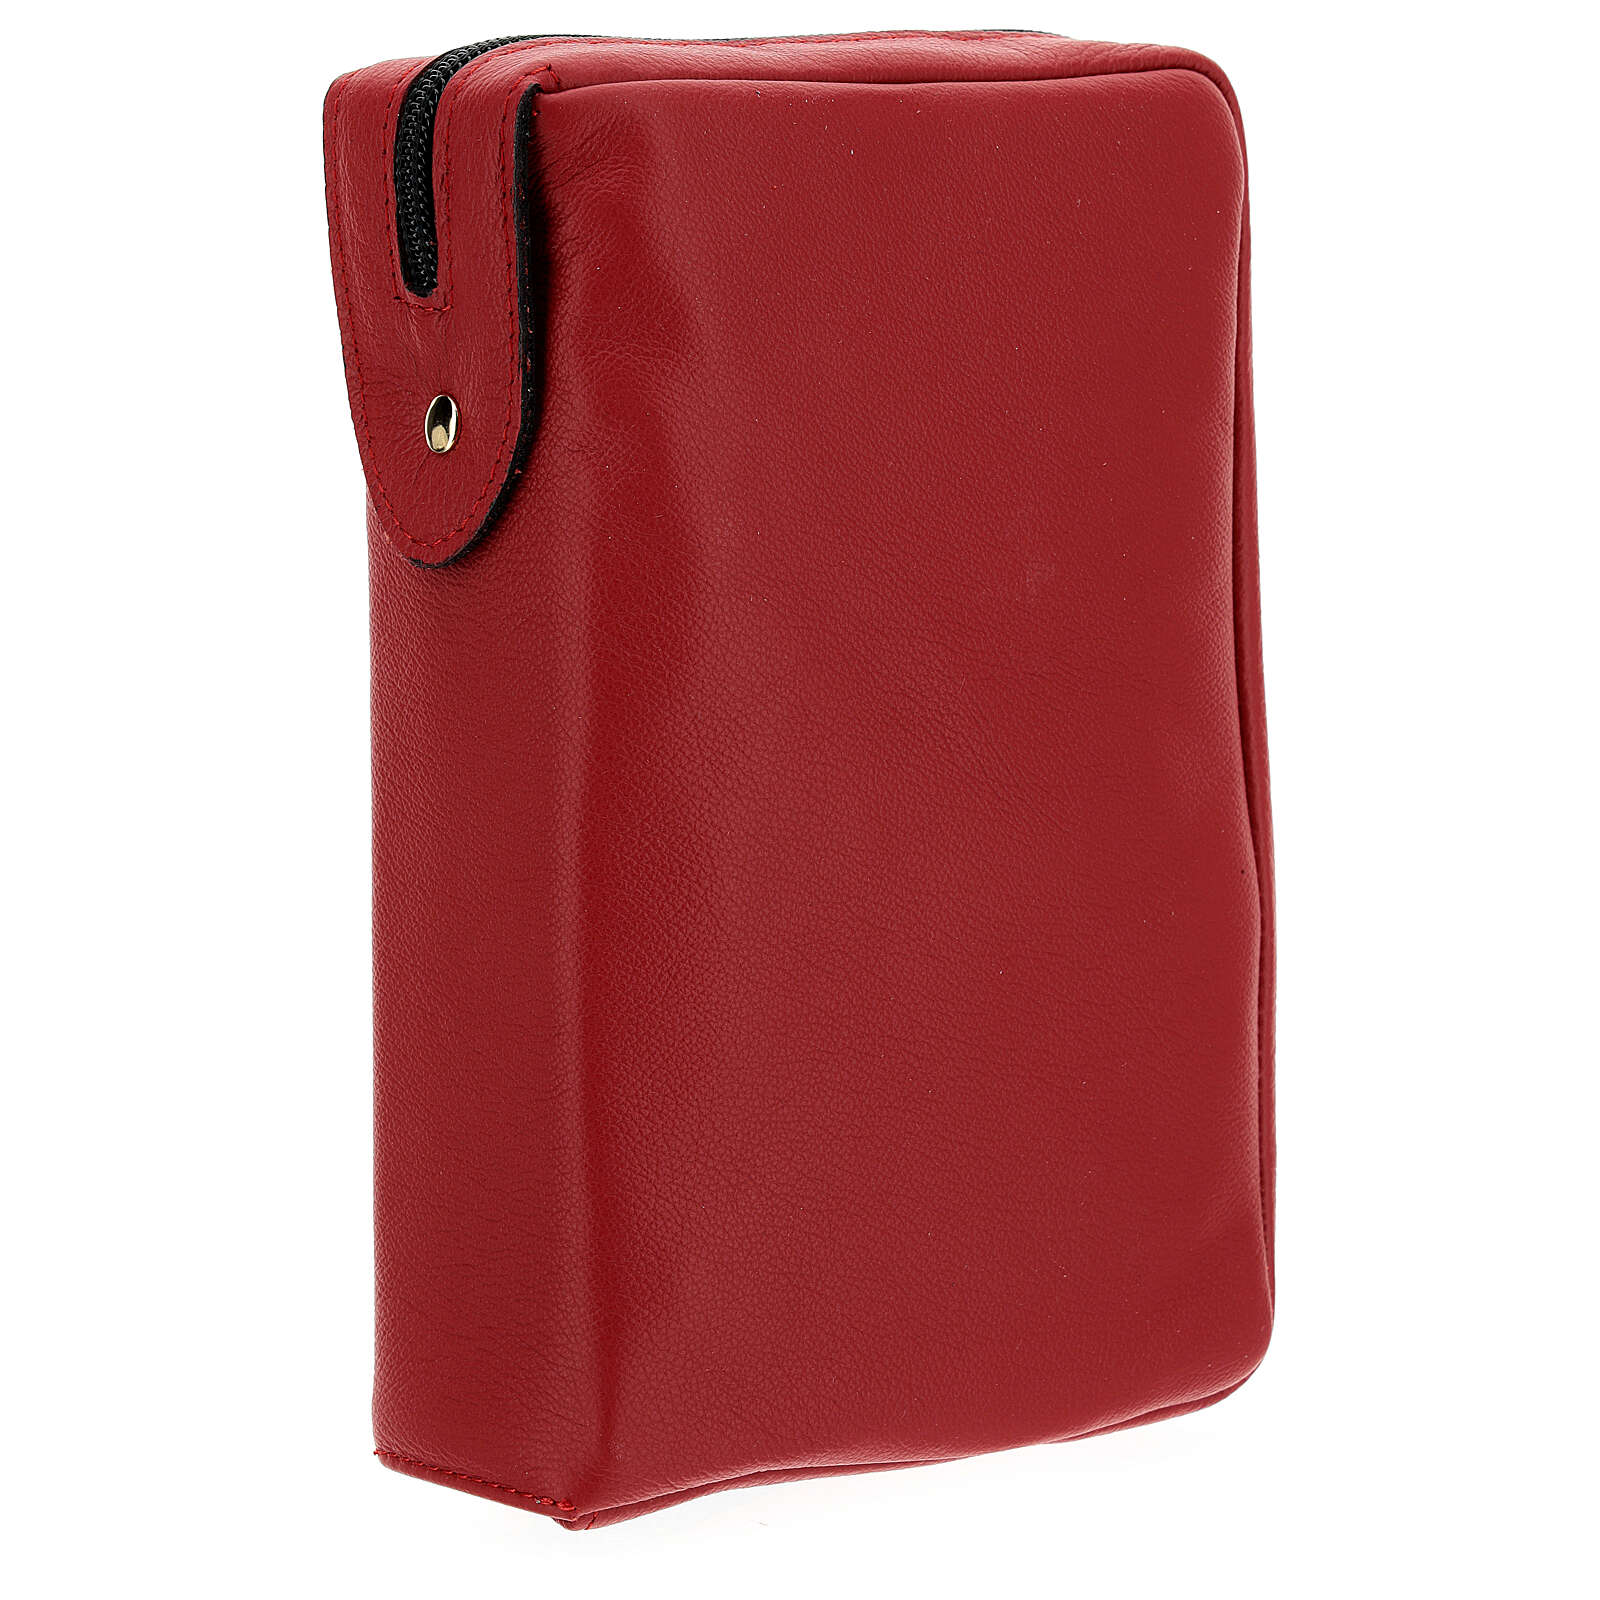 Real red leather case Daily Missal St. Paul III EDITION 4